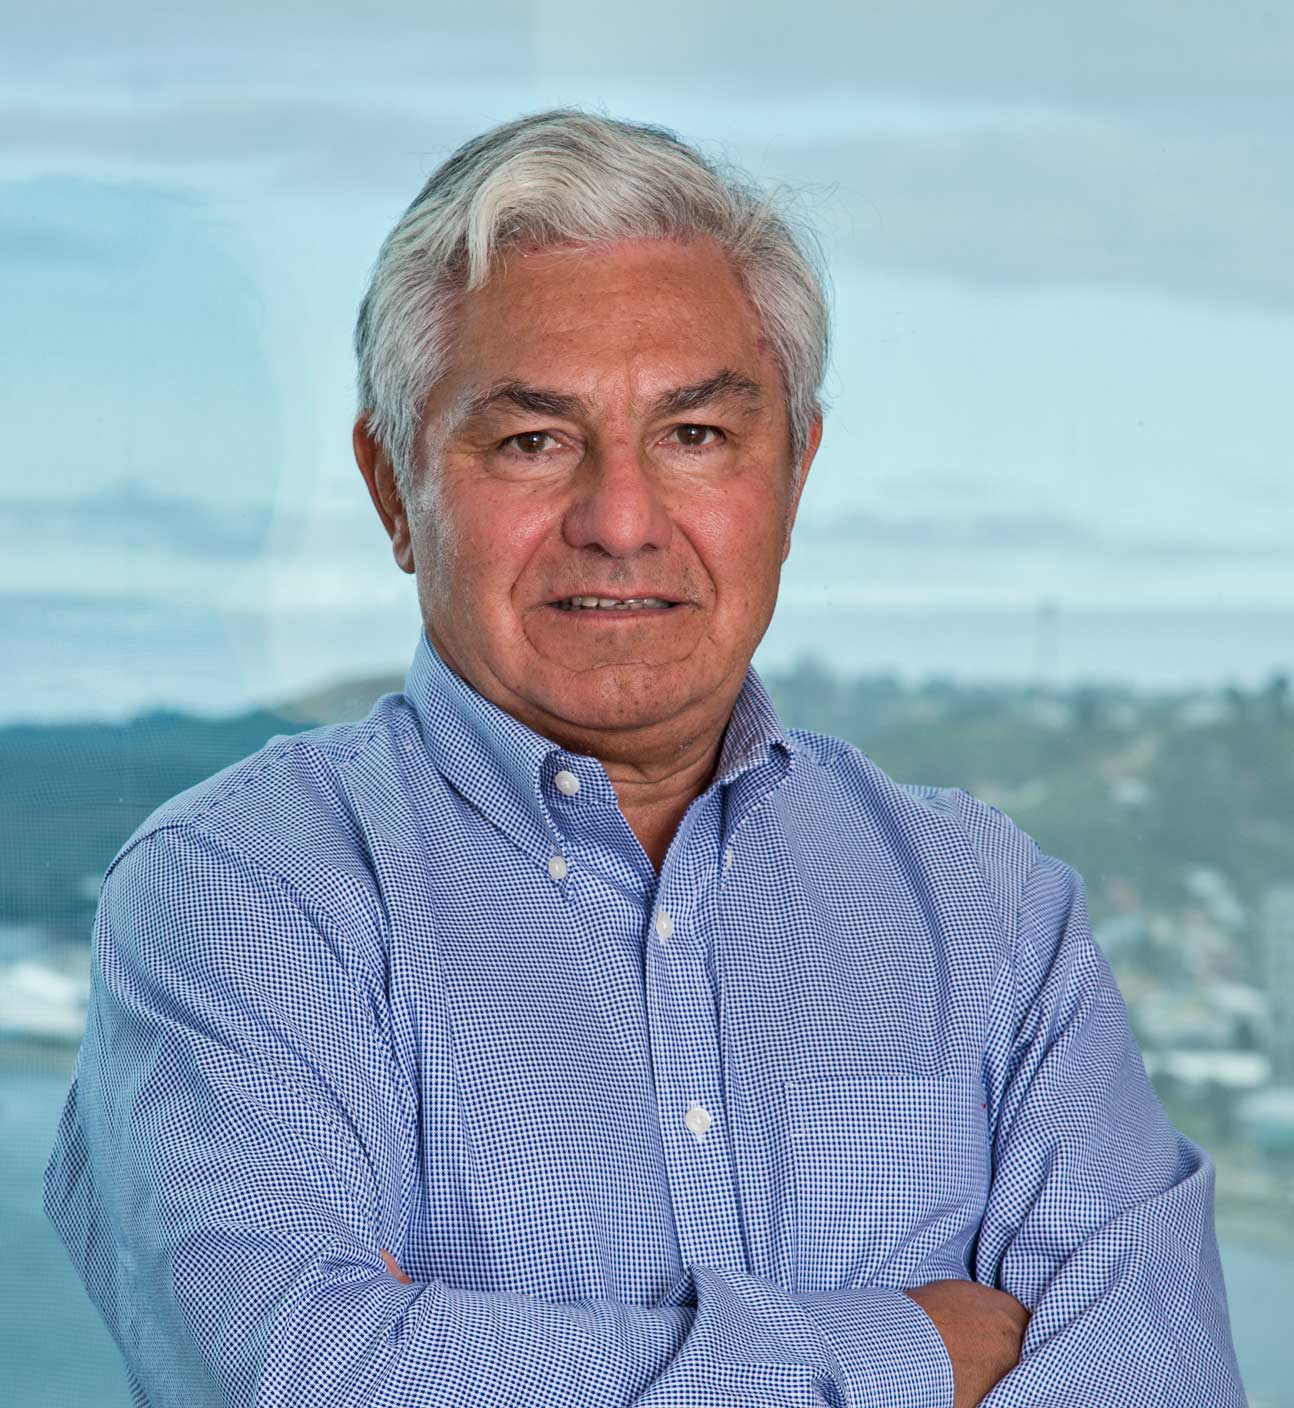 Arturo Clément  Chairman of Salmon Chile, Founder of BluGlacier  Entrepreneurship, Finance, Salmon, Seafood market expert